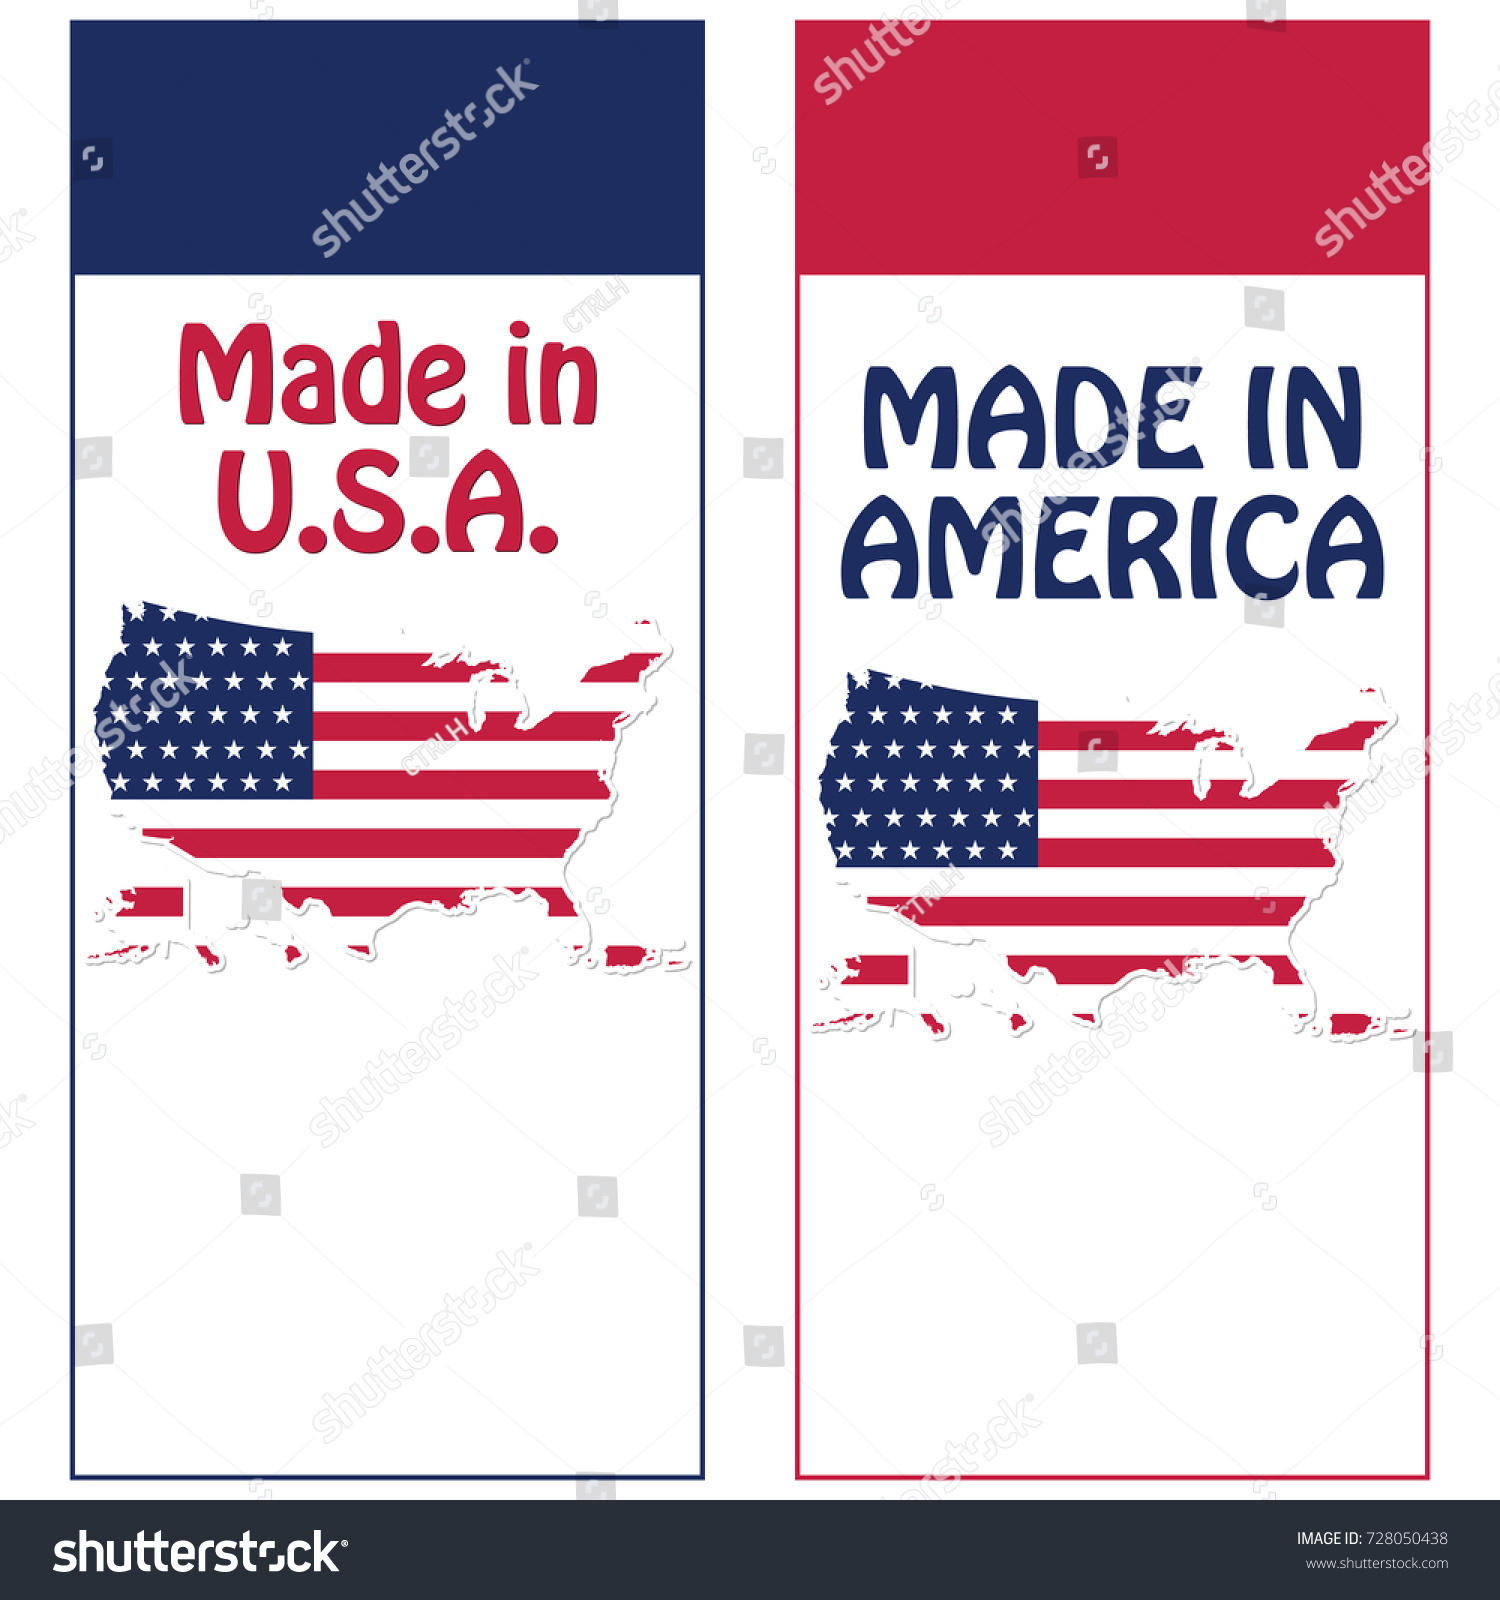 made in usa printable stickers set contains the american flag and map